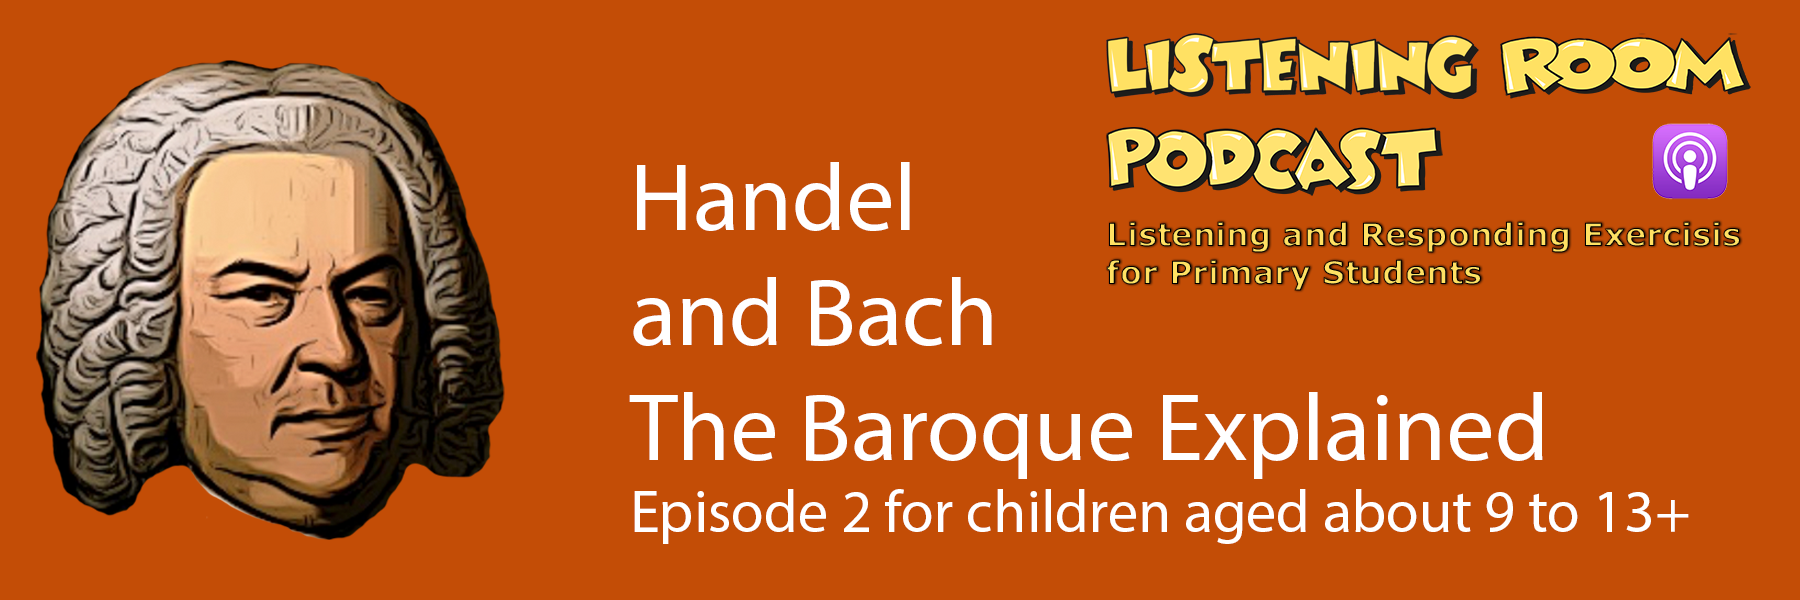 Listening Room Podcast S03E02 the Baroque Explained